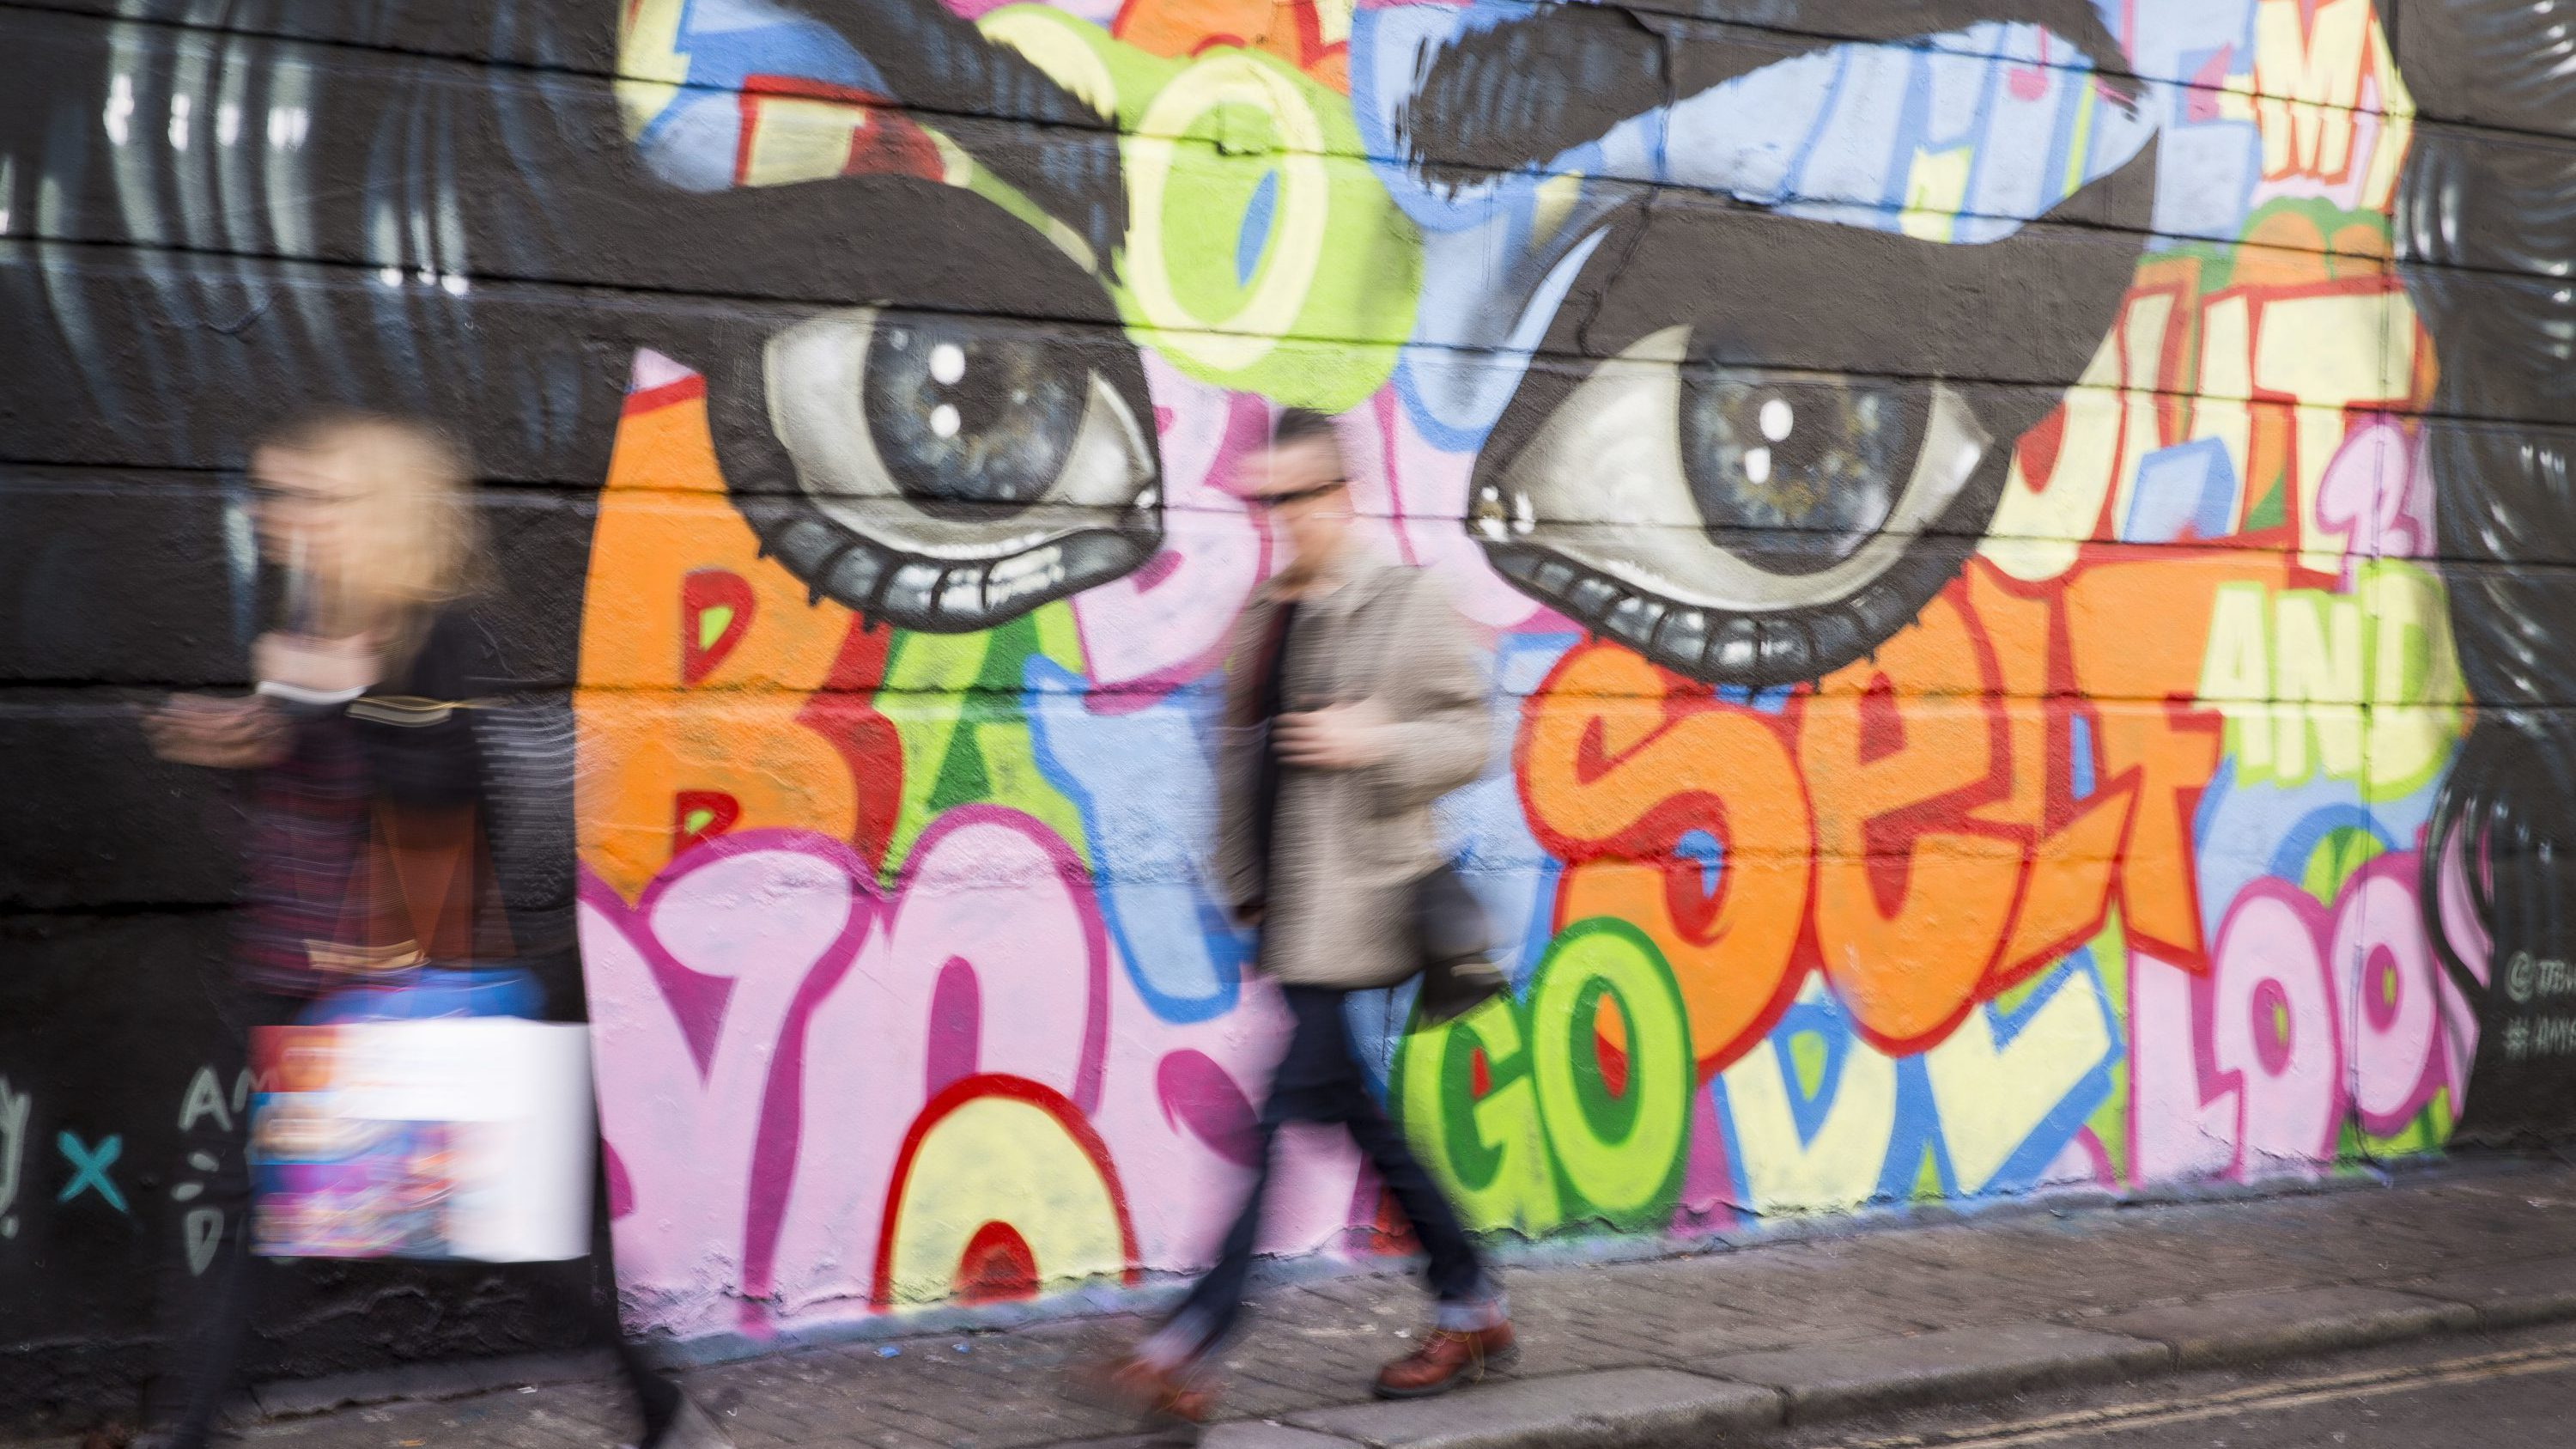 Members of the public walk past Amy Winehouse street art in her hometown of Camden, north London, Monday, March. 6, 2017, as her life is to be celebrated with a new art trail crowdfunded via Art Happens. The Amy Winehouse Street Art Trail will run from March 15 until June 4 2017.